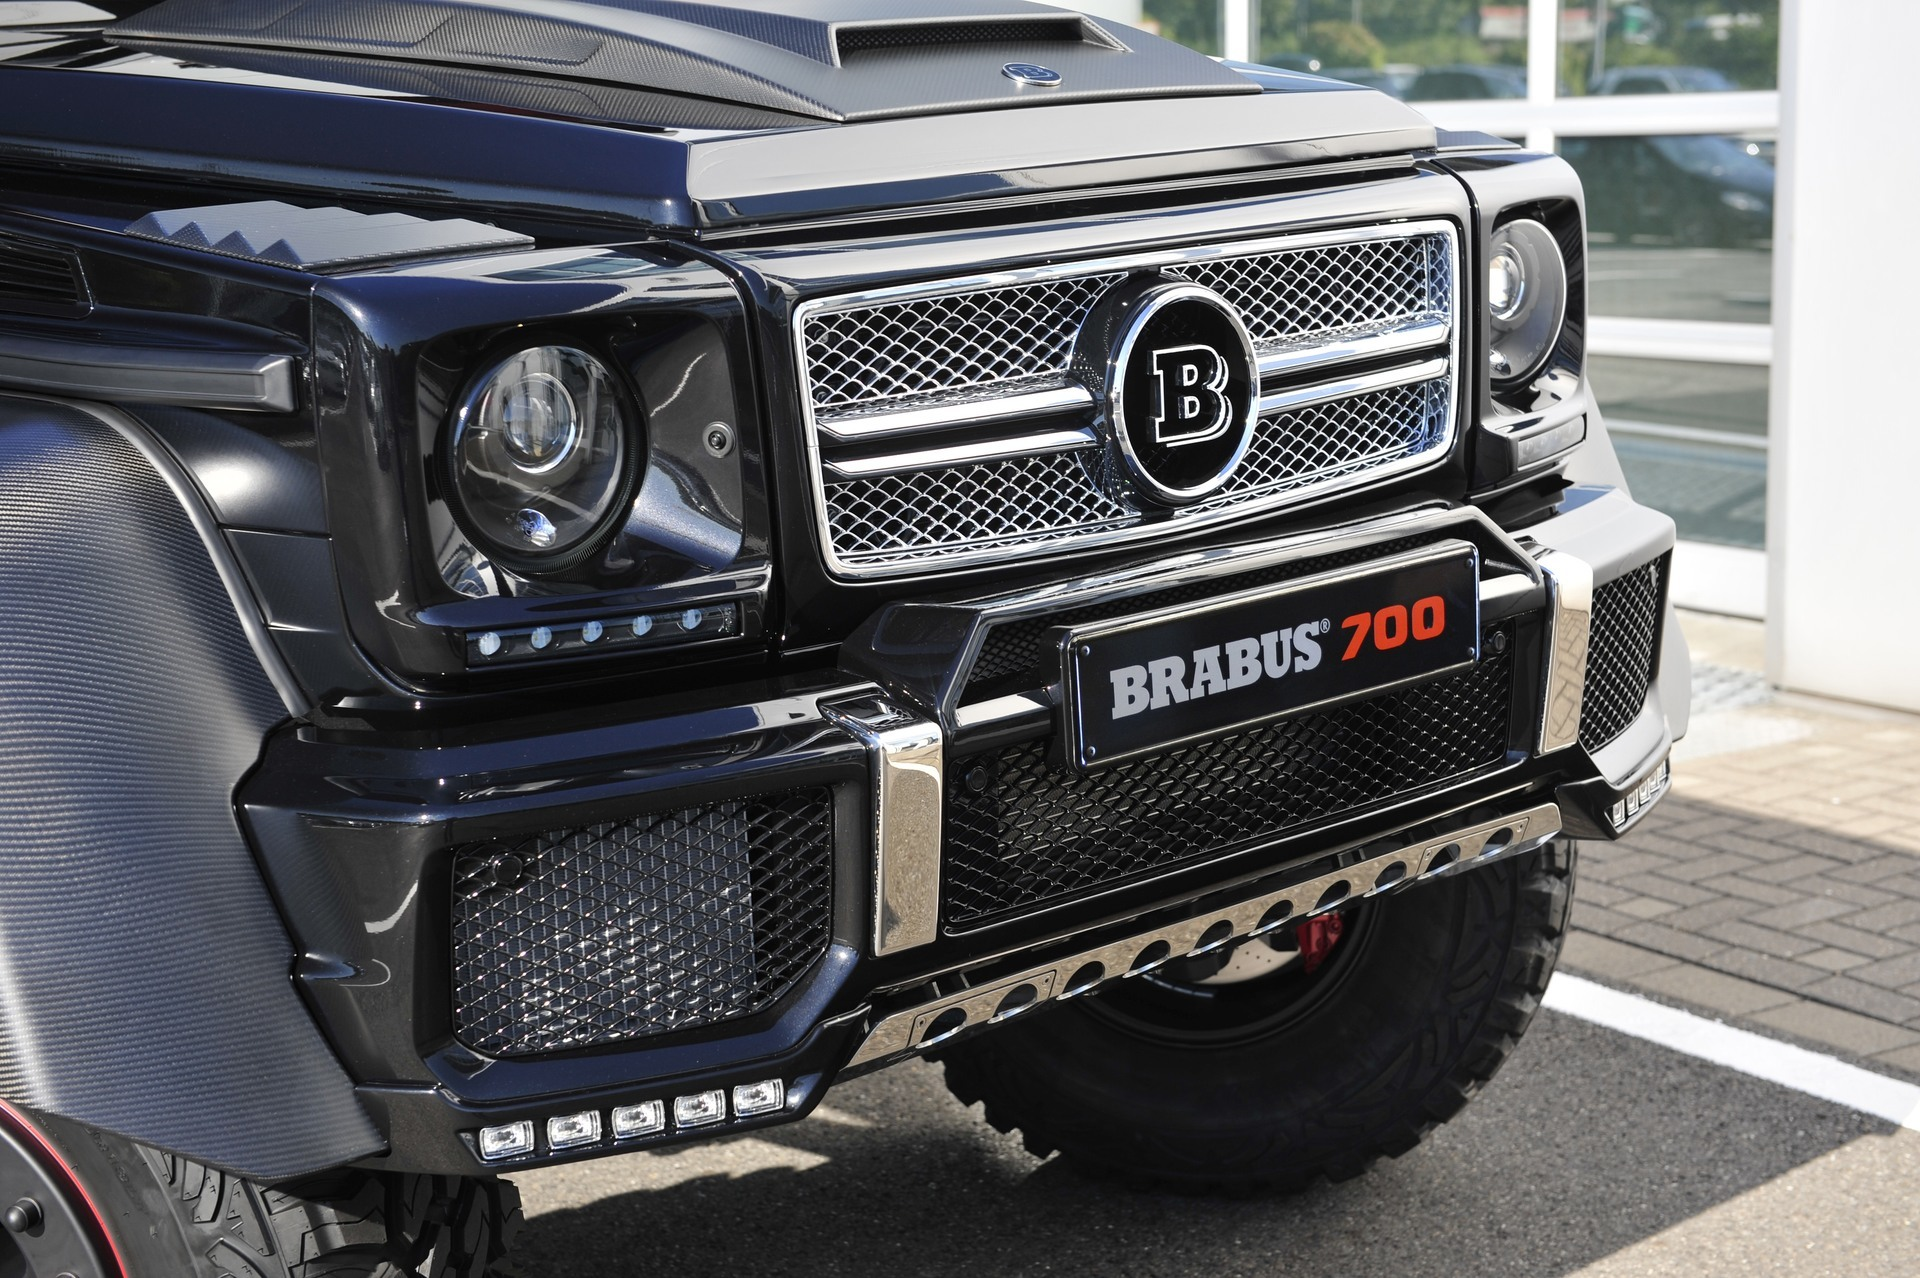 Brabus G63/G65 AMG Front Bumper Add-on